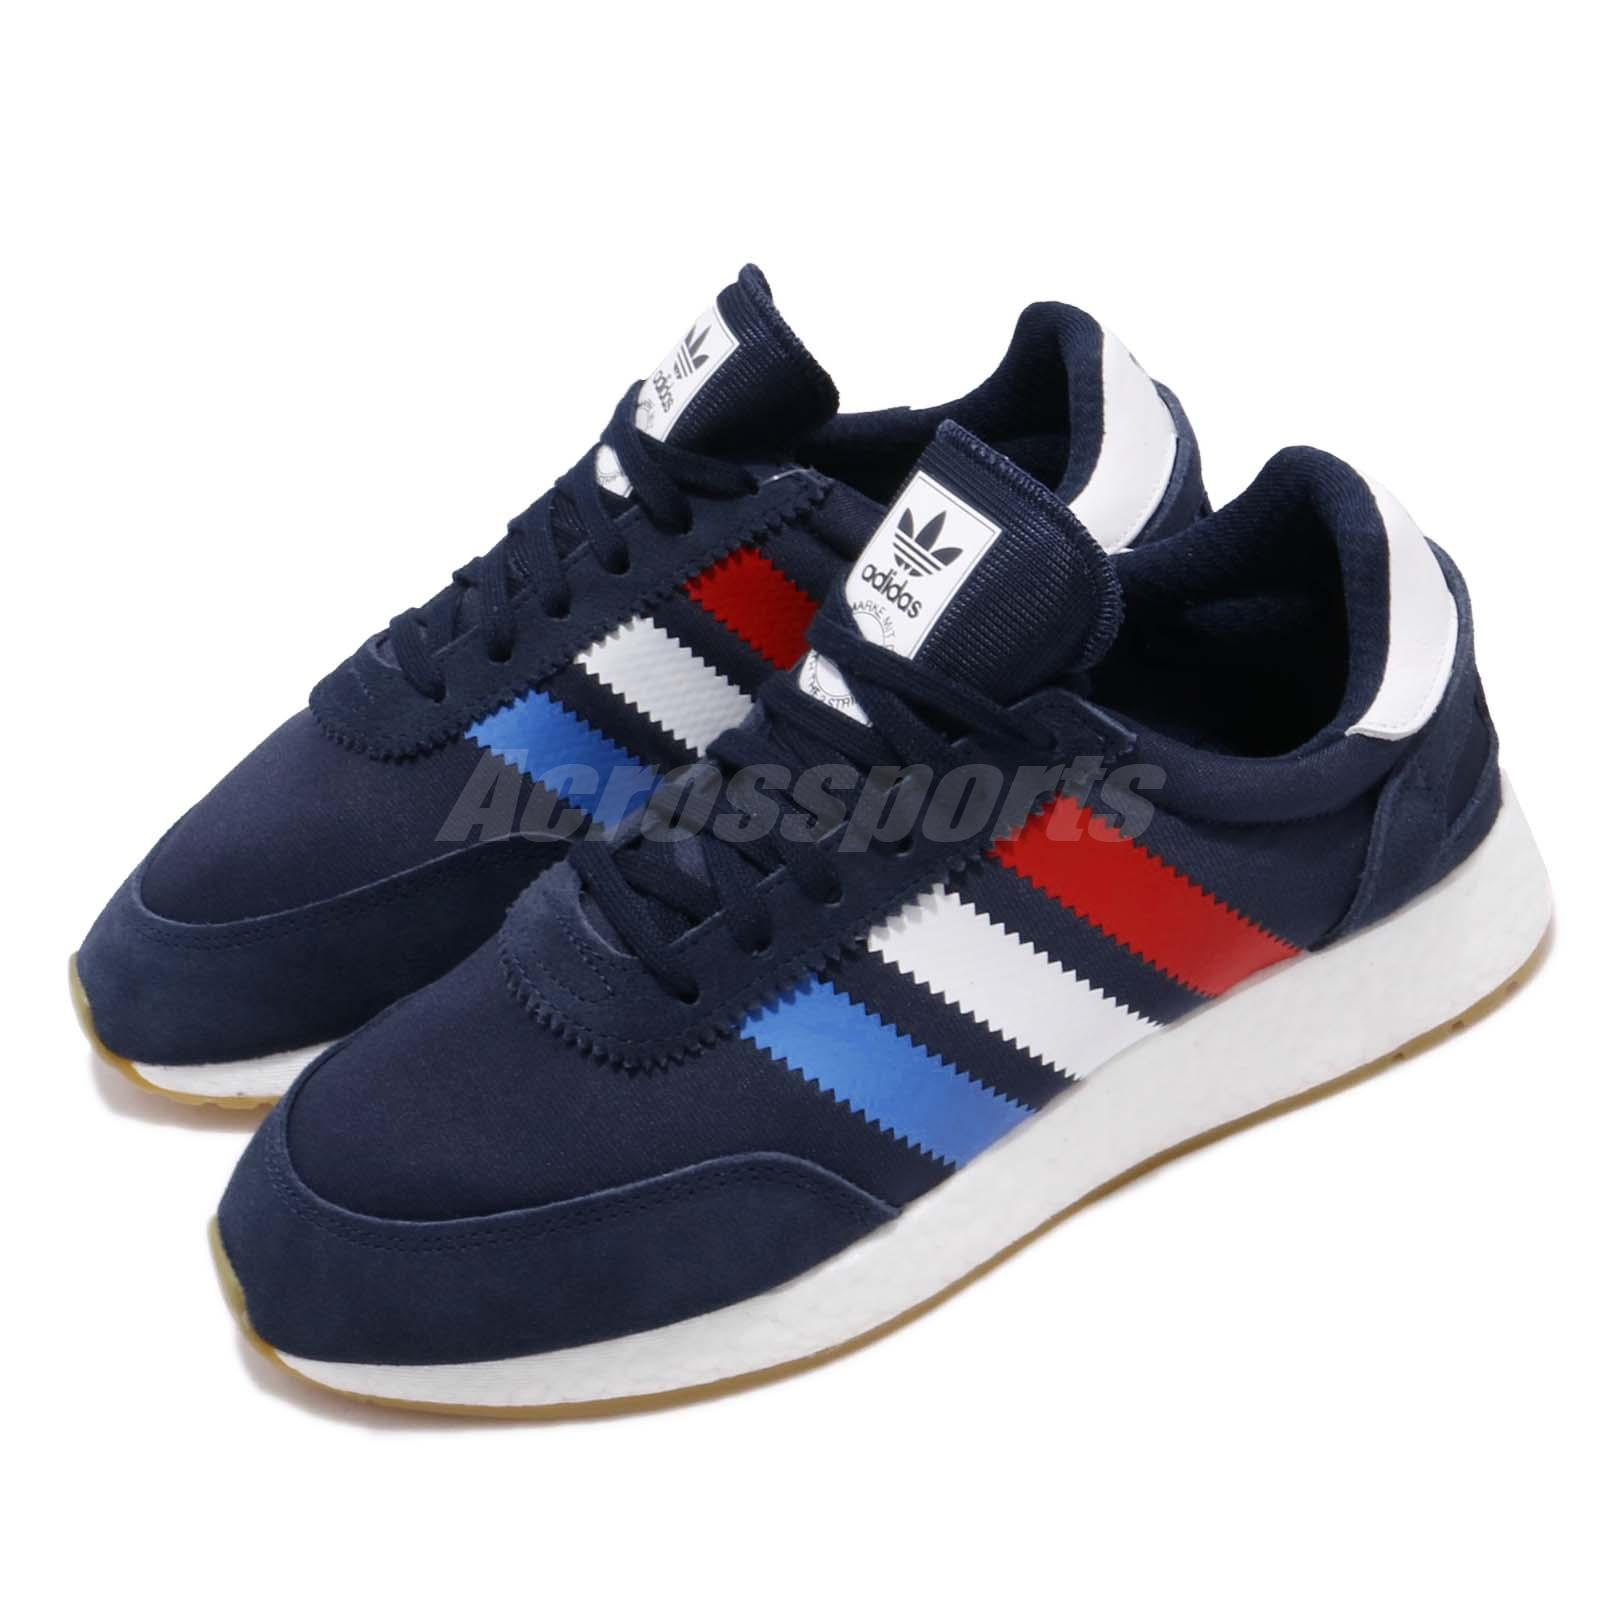 clearance prices on sale buy popular Details about adidas Originals I-5923 Navy Red White Blue BOOST Mens  Running Shoes BD7814